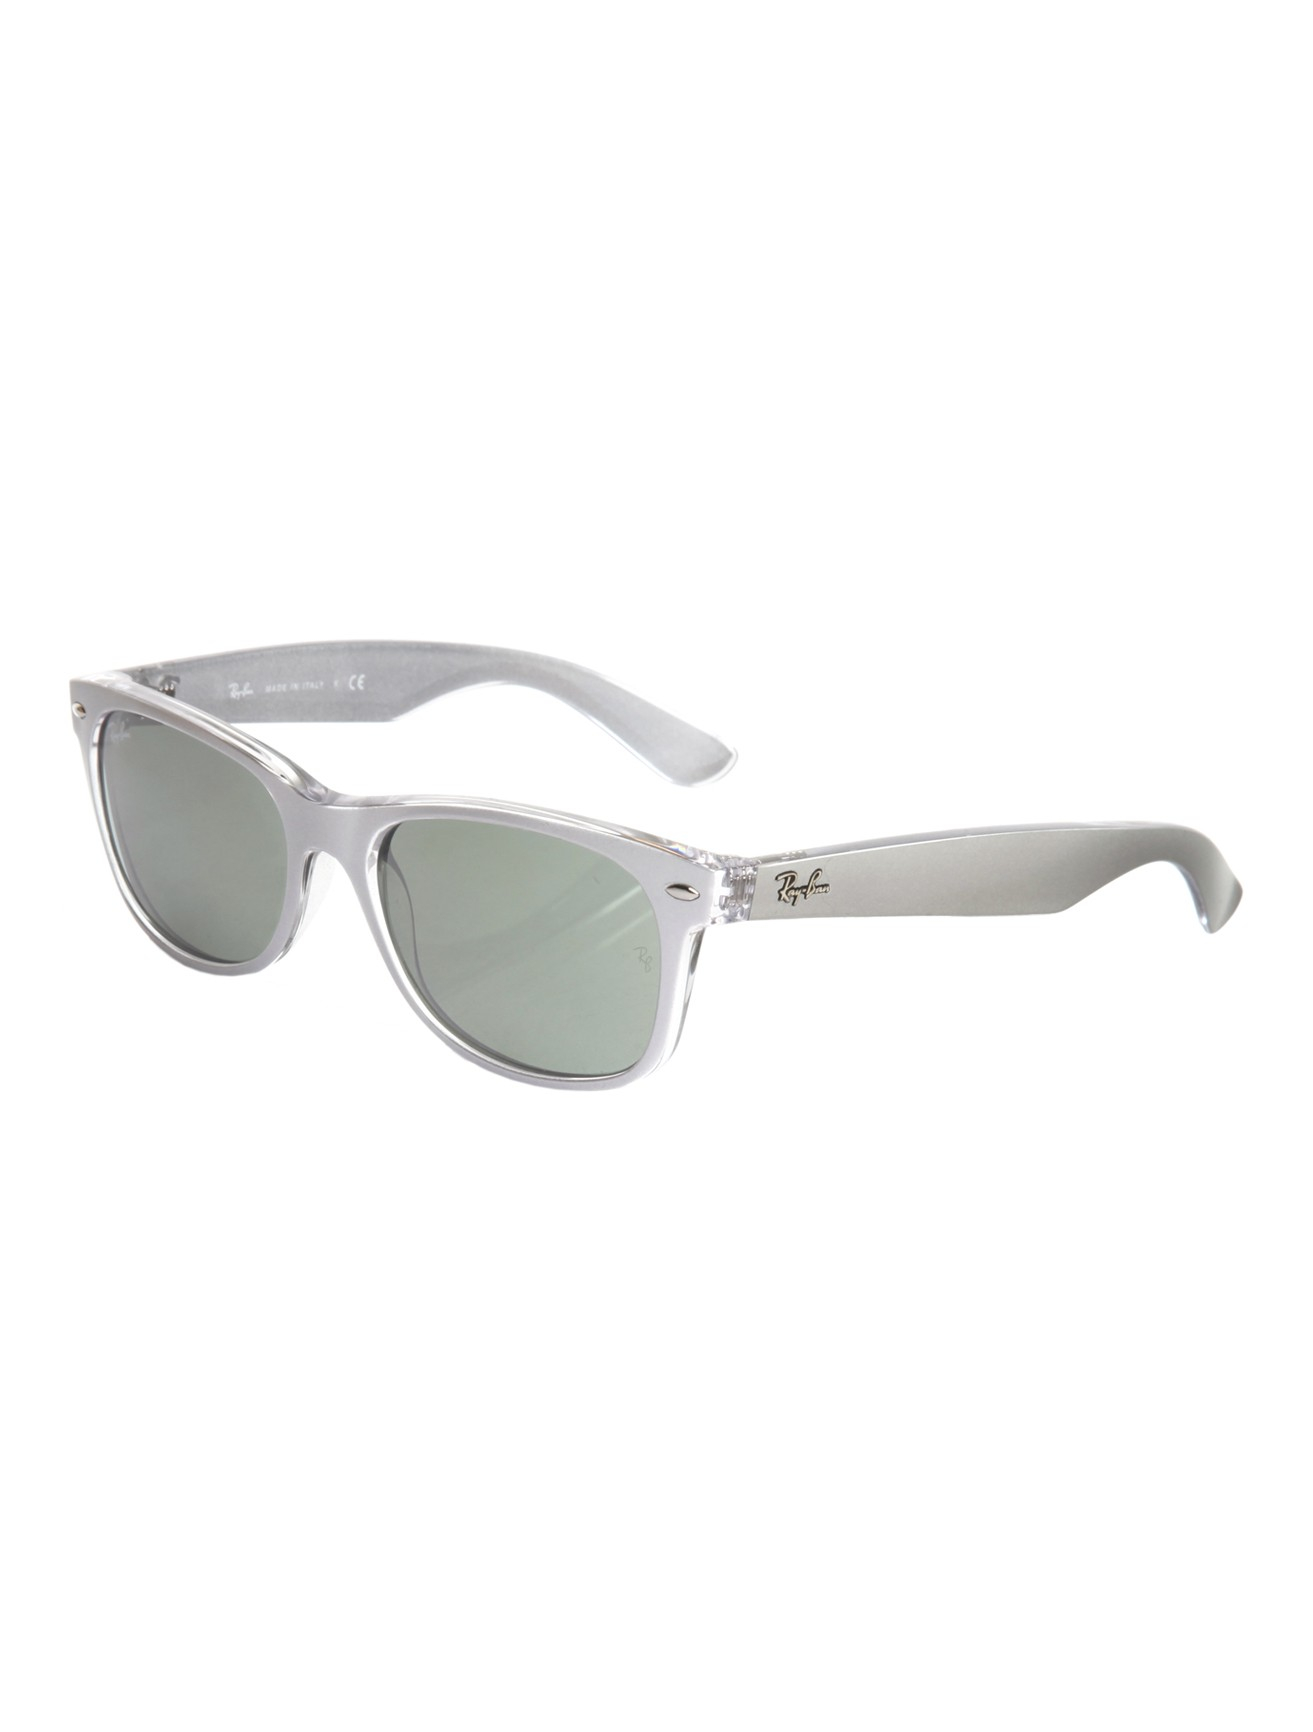 Clear Ray Bans Frames Www Tapdance Org